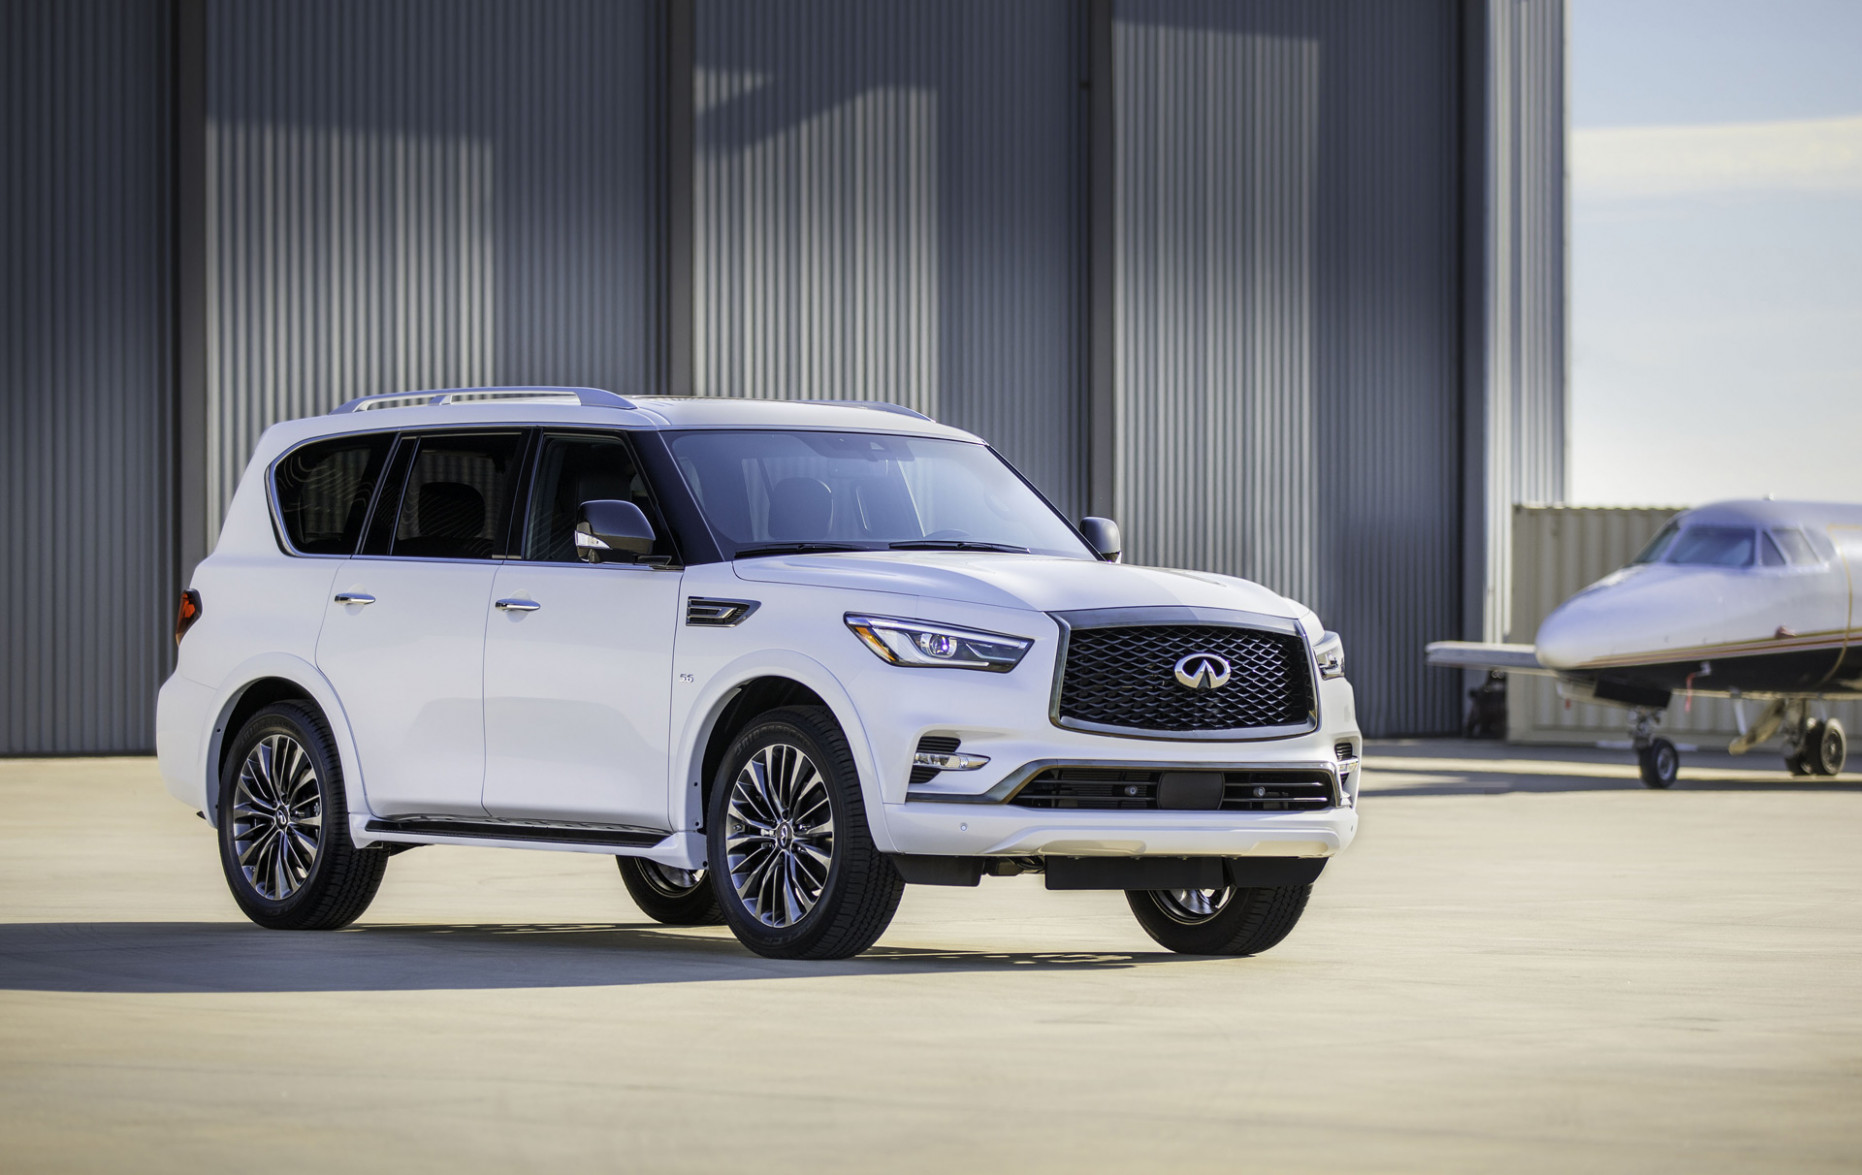 New and Used INFINITI QX7: Prices, Photos, Reviews, Specs - The ..